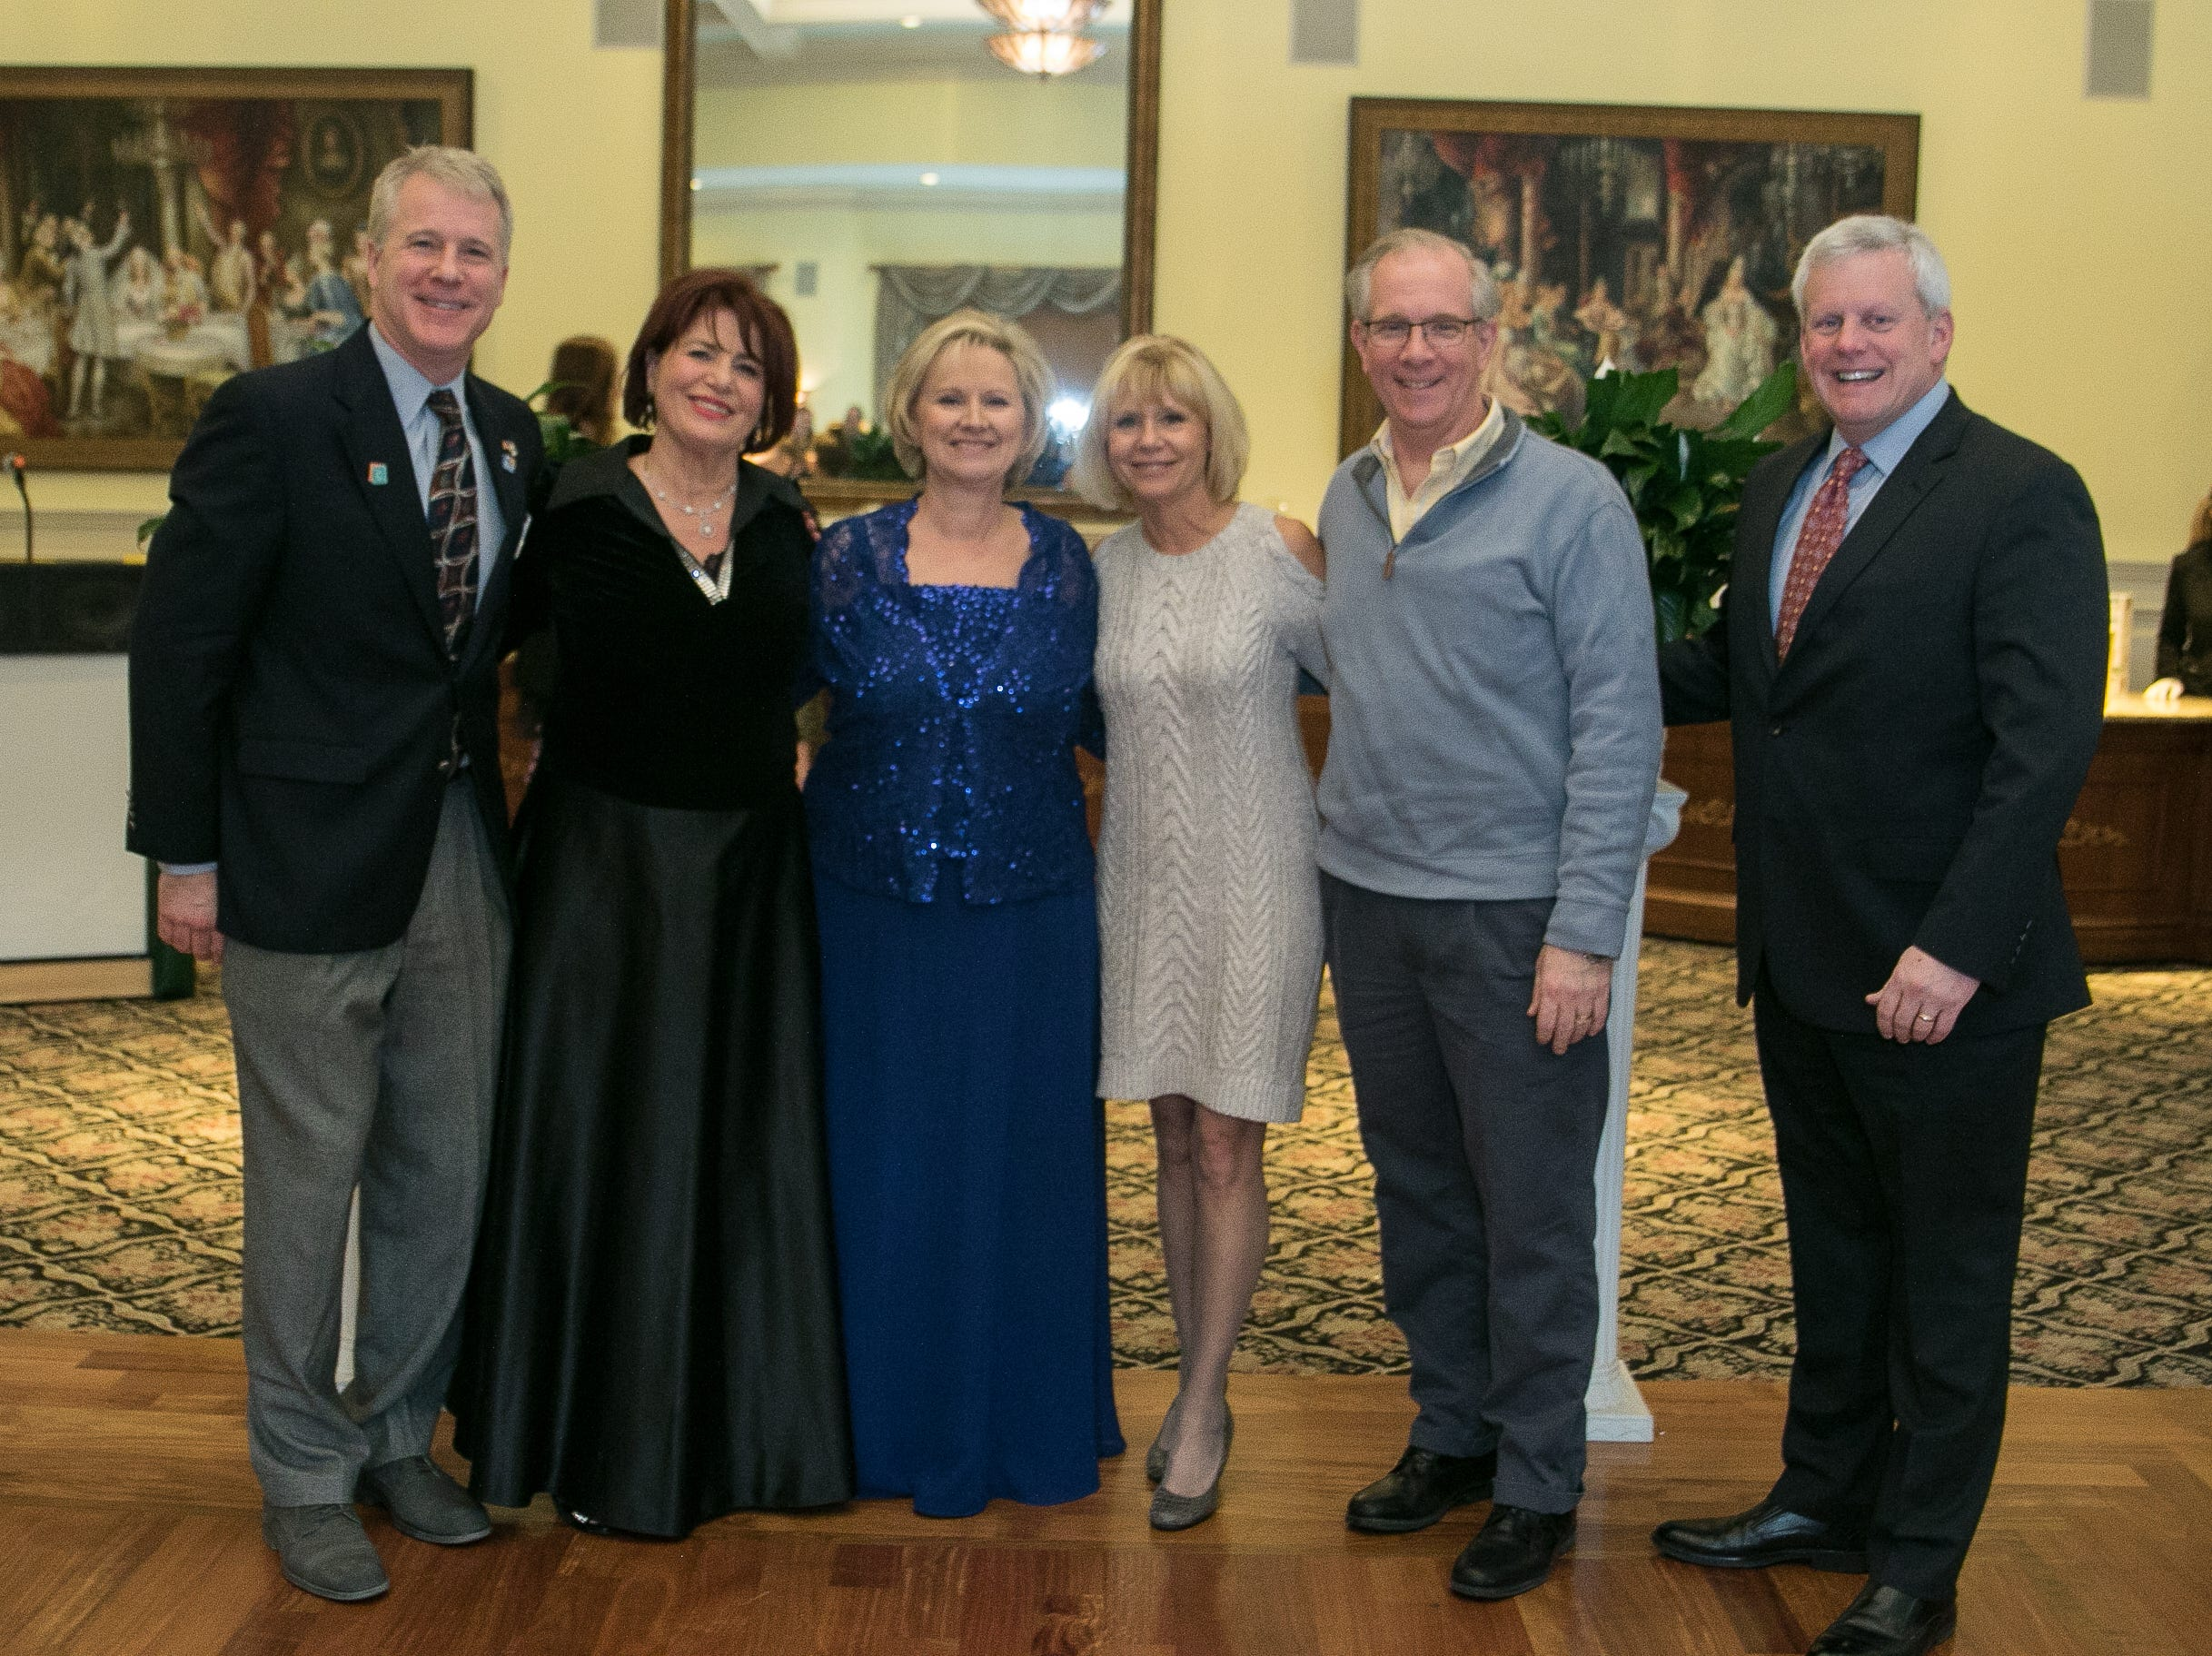 John Adams, with Emmy Eliya, Nancy DeRitter- Event co-chairs, Sue Dobson, Tom DeLoughry, Russel Kamp. The Midland Park Ramapo Eisenhower React/ Interact Clubs held it's sixth Annual fashion show and tricky tray at The Brick House in Wyckoff. 01/27/2019